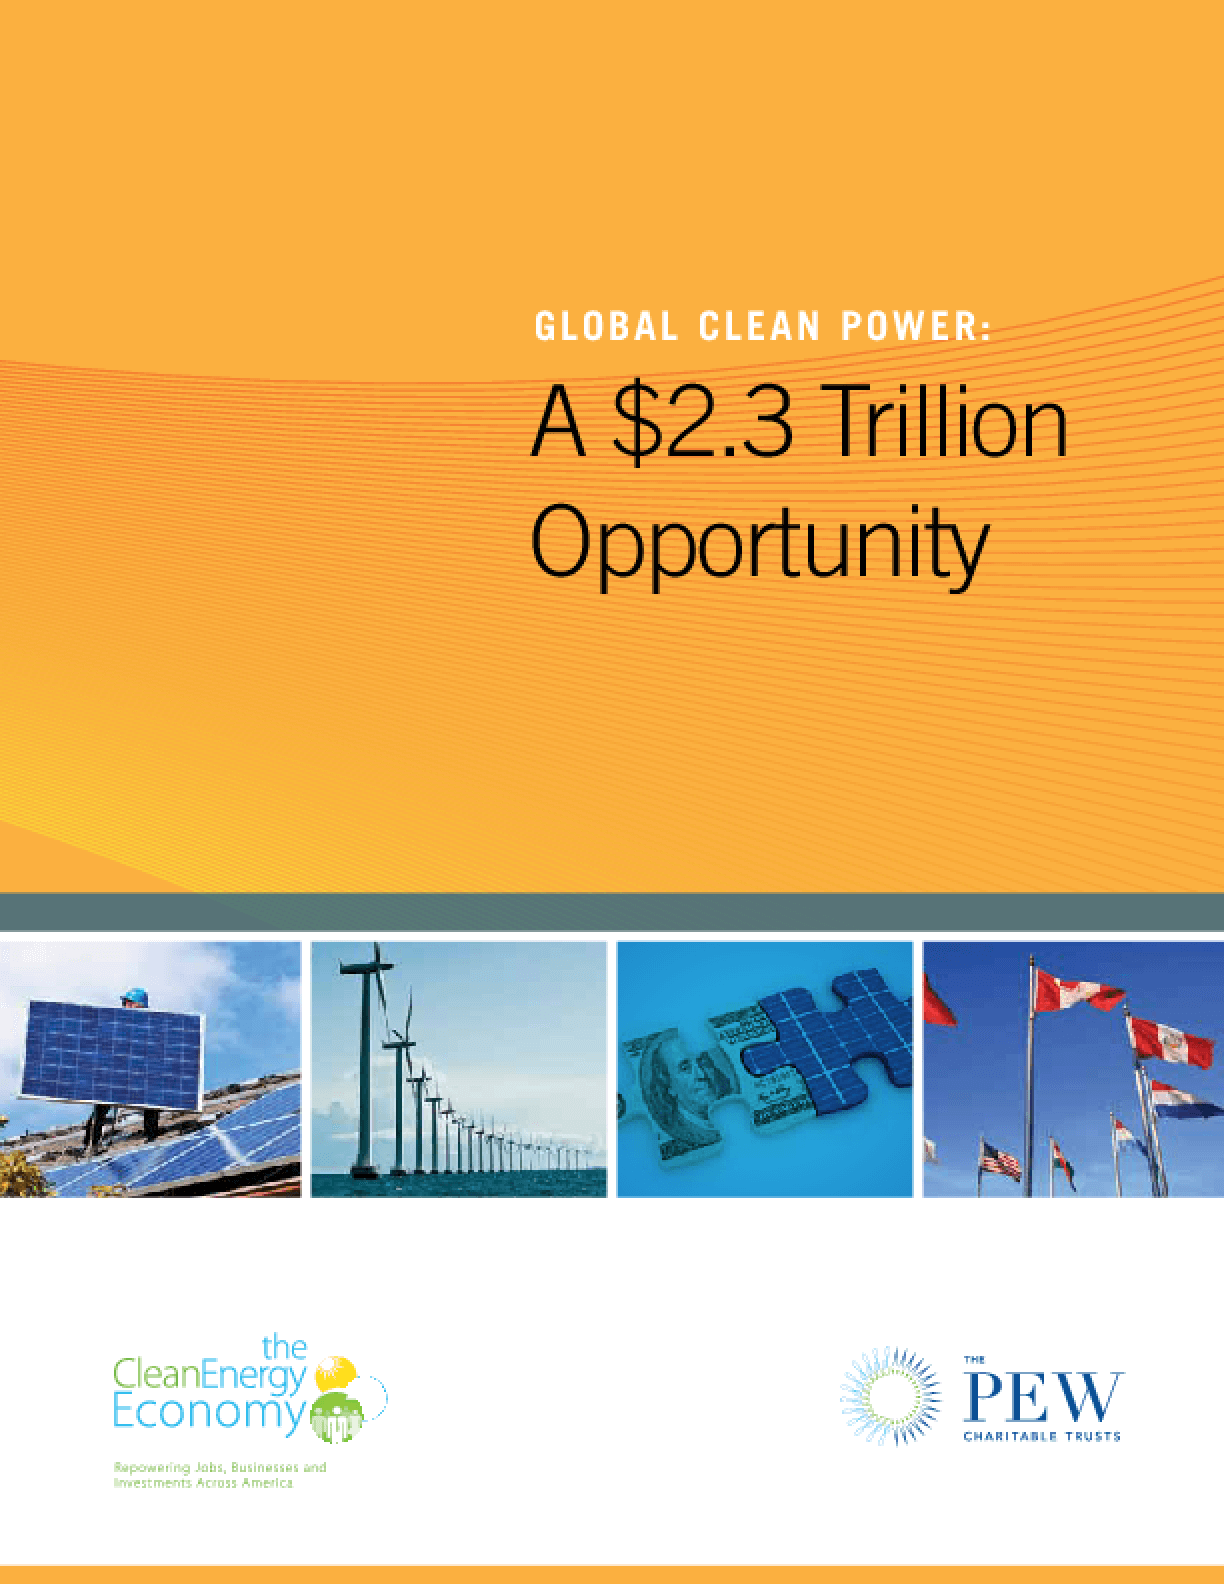 Global Clean Power: A $2.3 Trillion Opportunity